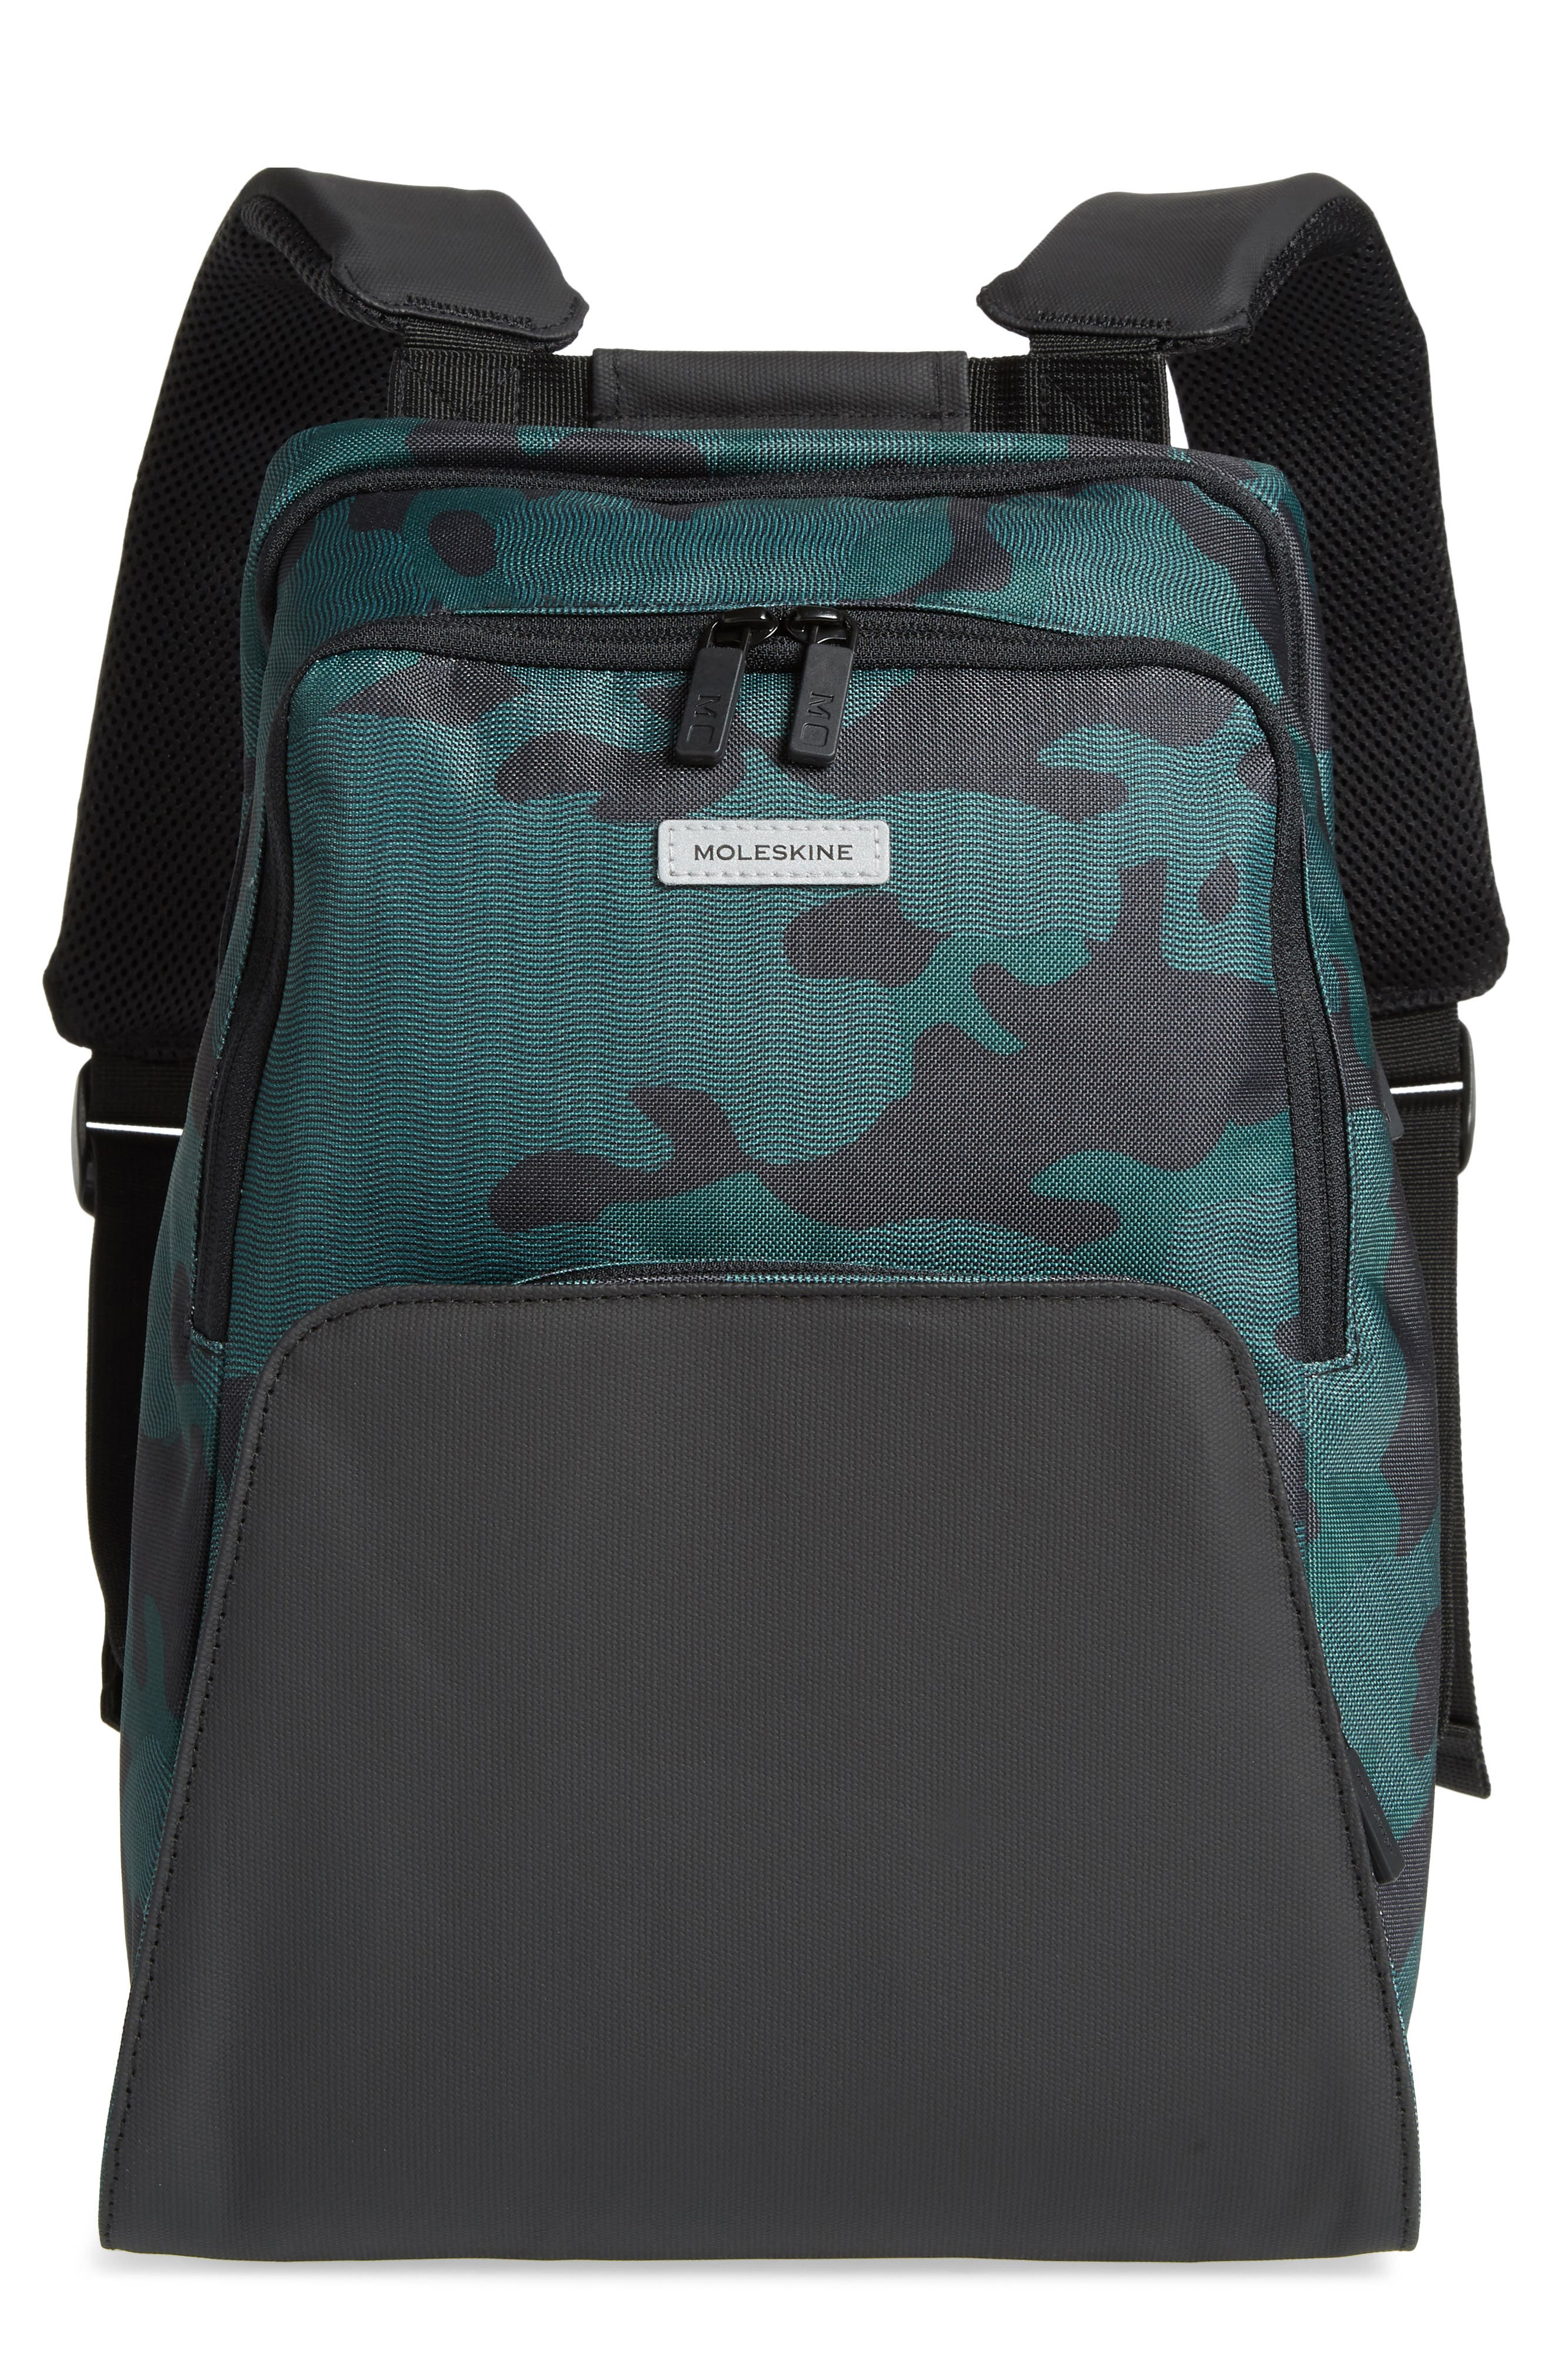 Nomad Water Resistant Backpack,                         Main,                         color, 300